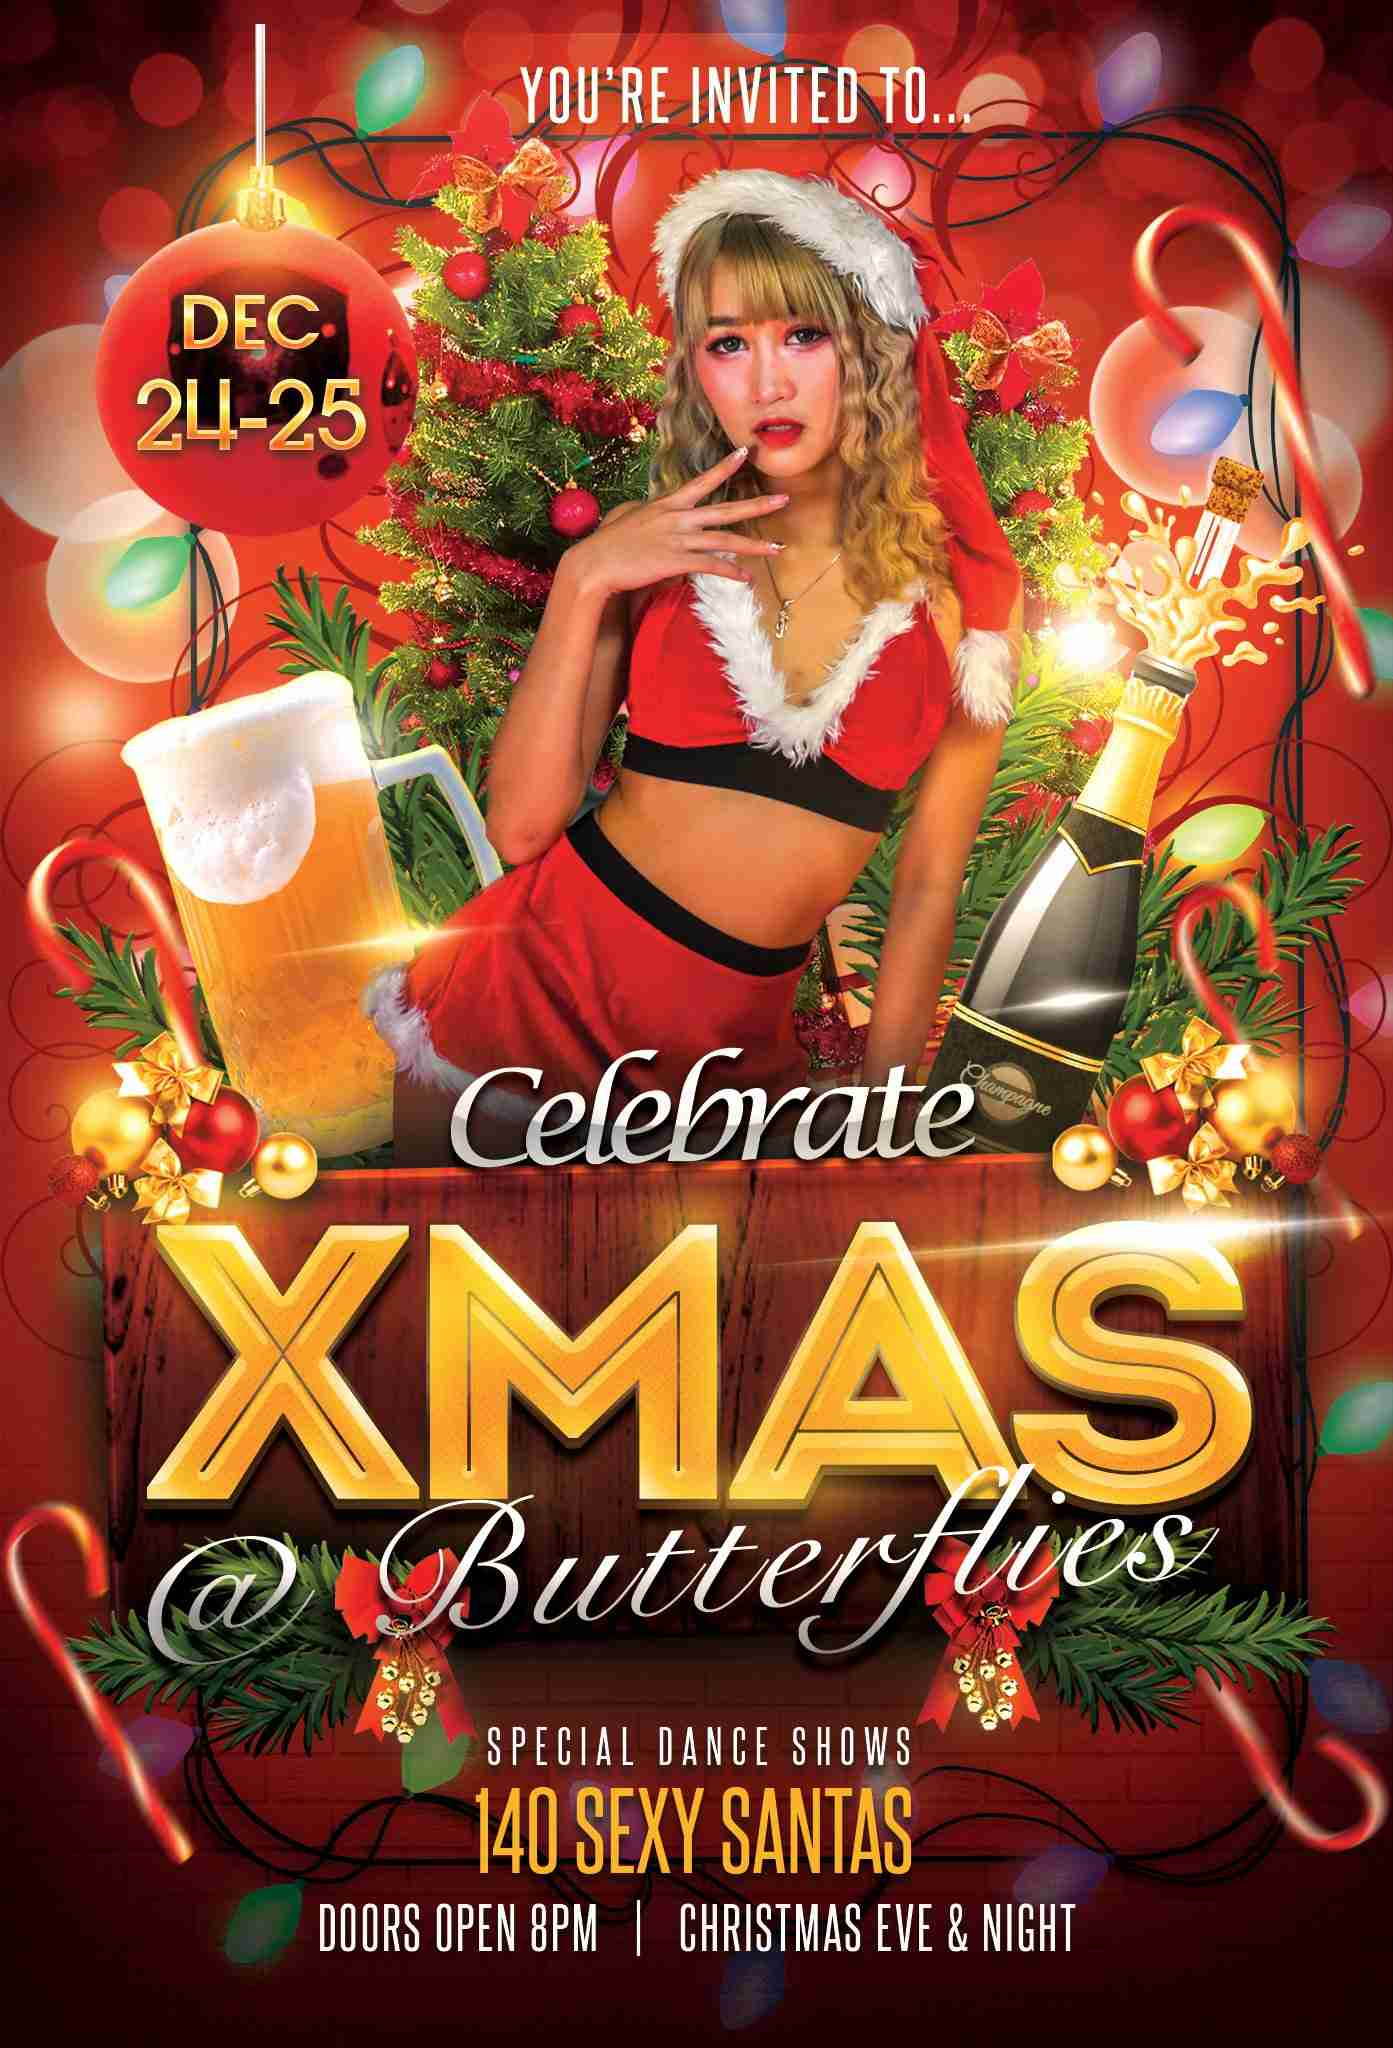 Butterflies Bangkok Nana Plaza Xmas Celebration Christmas Party